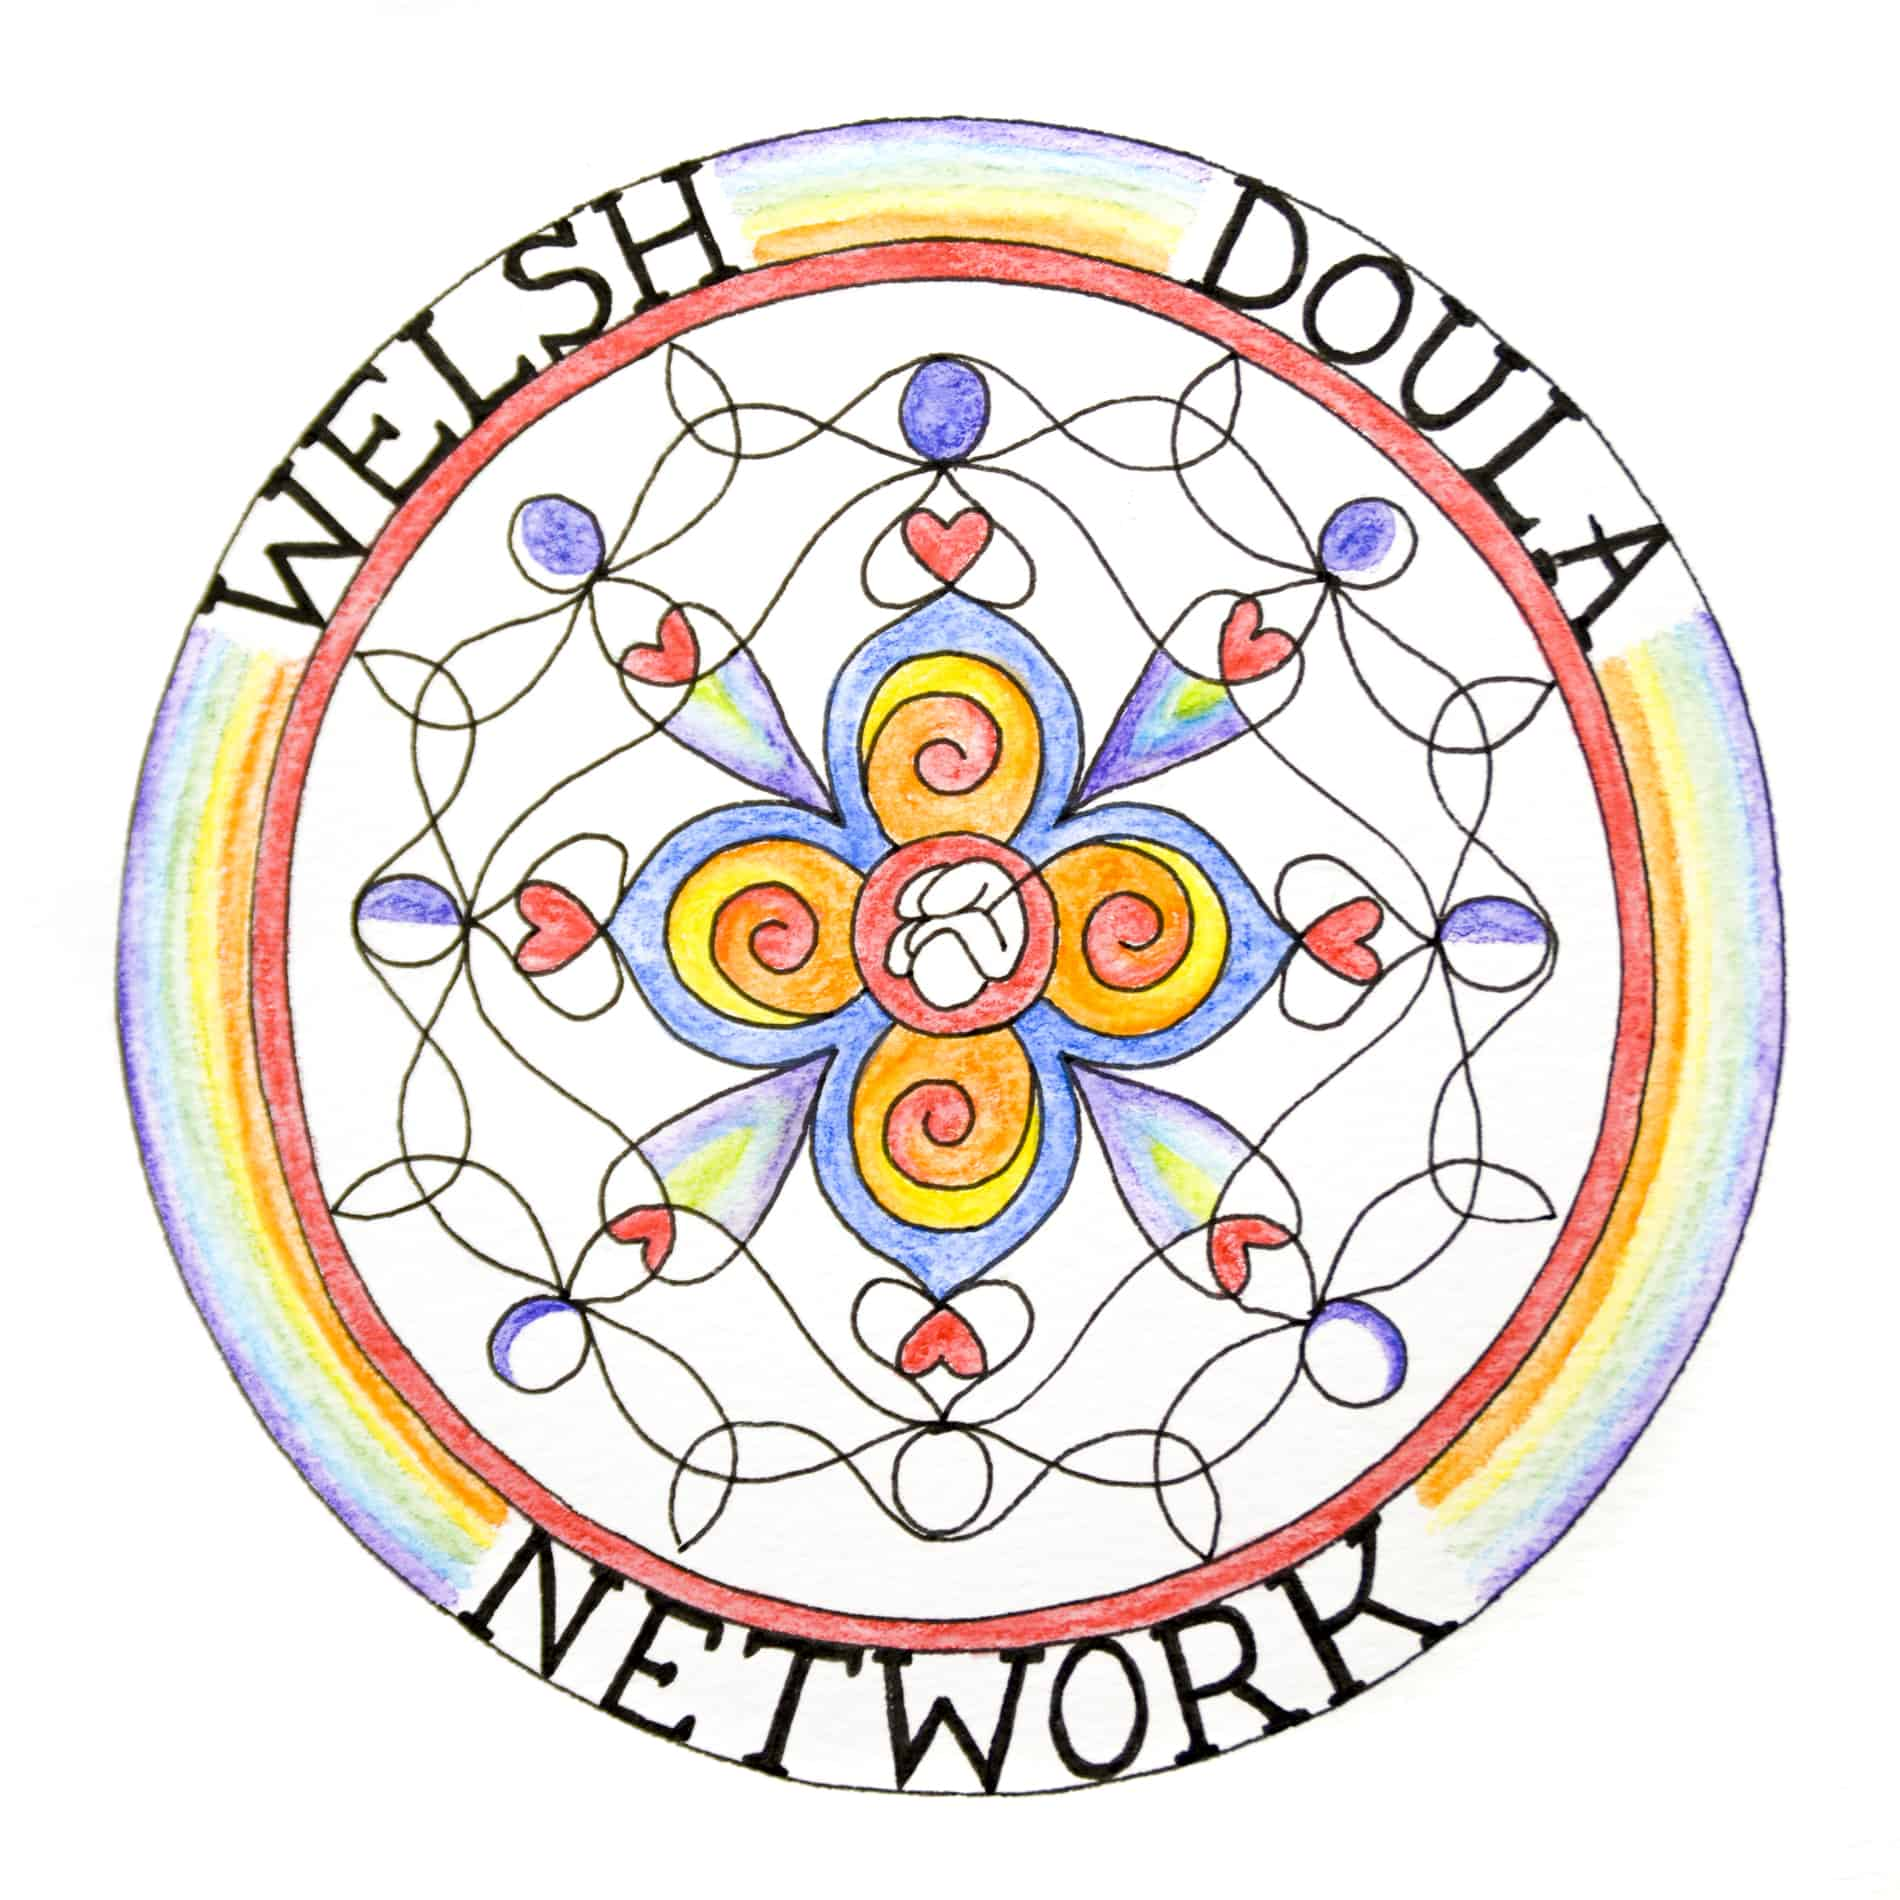 welsh doula network square logo